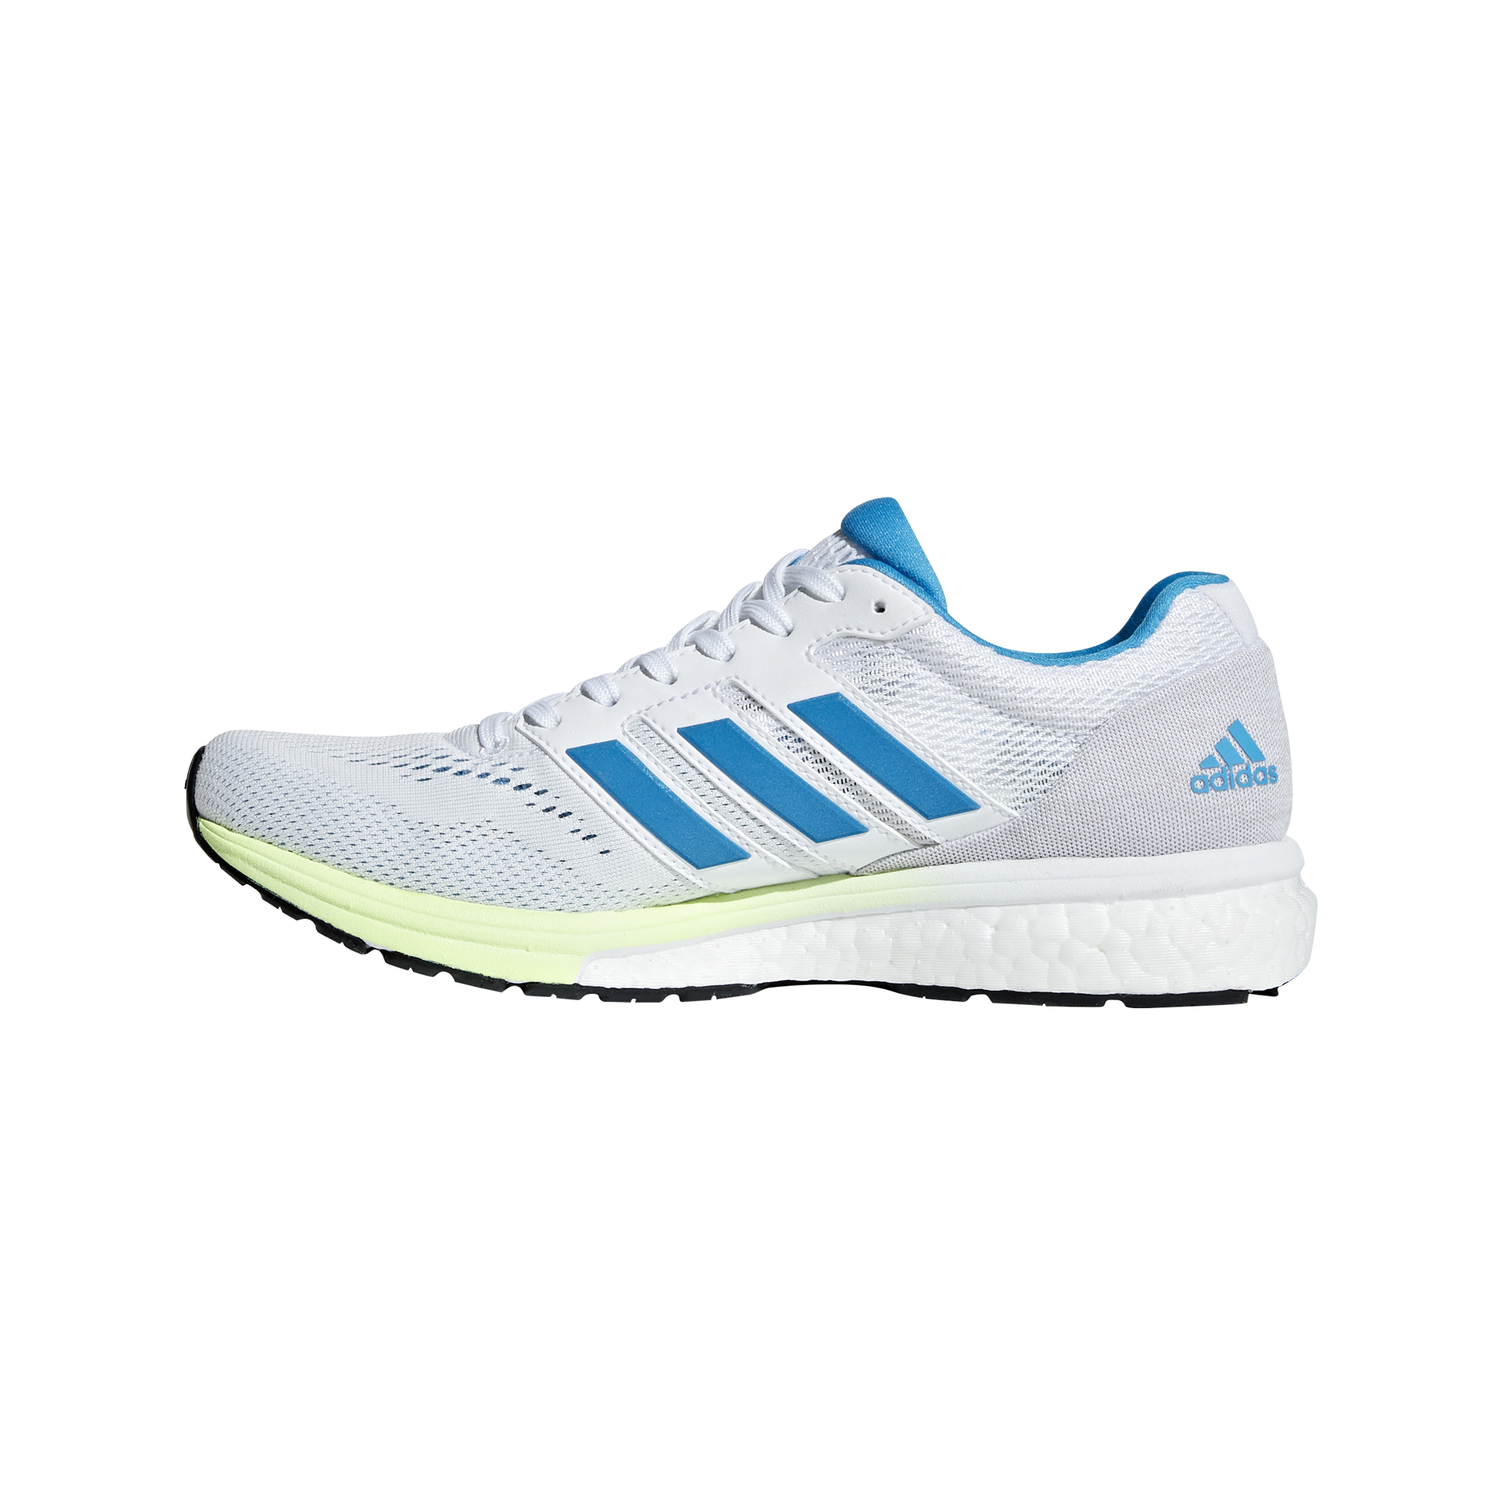 best website 01707 565fb Adidas Adizero Boston 7 - Womens Running Shoes - White